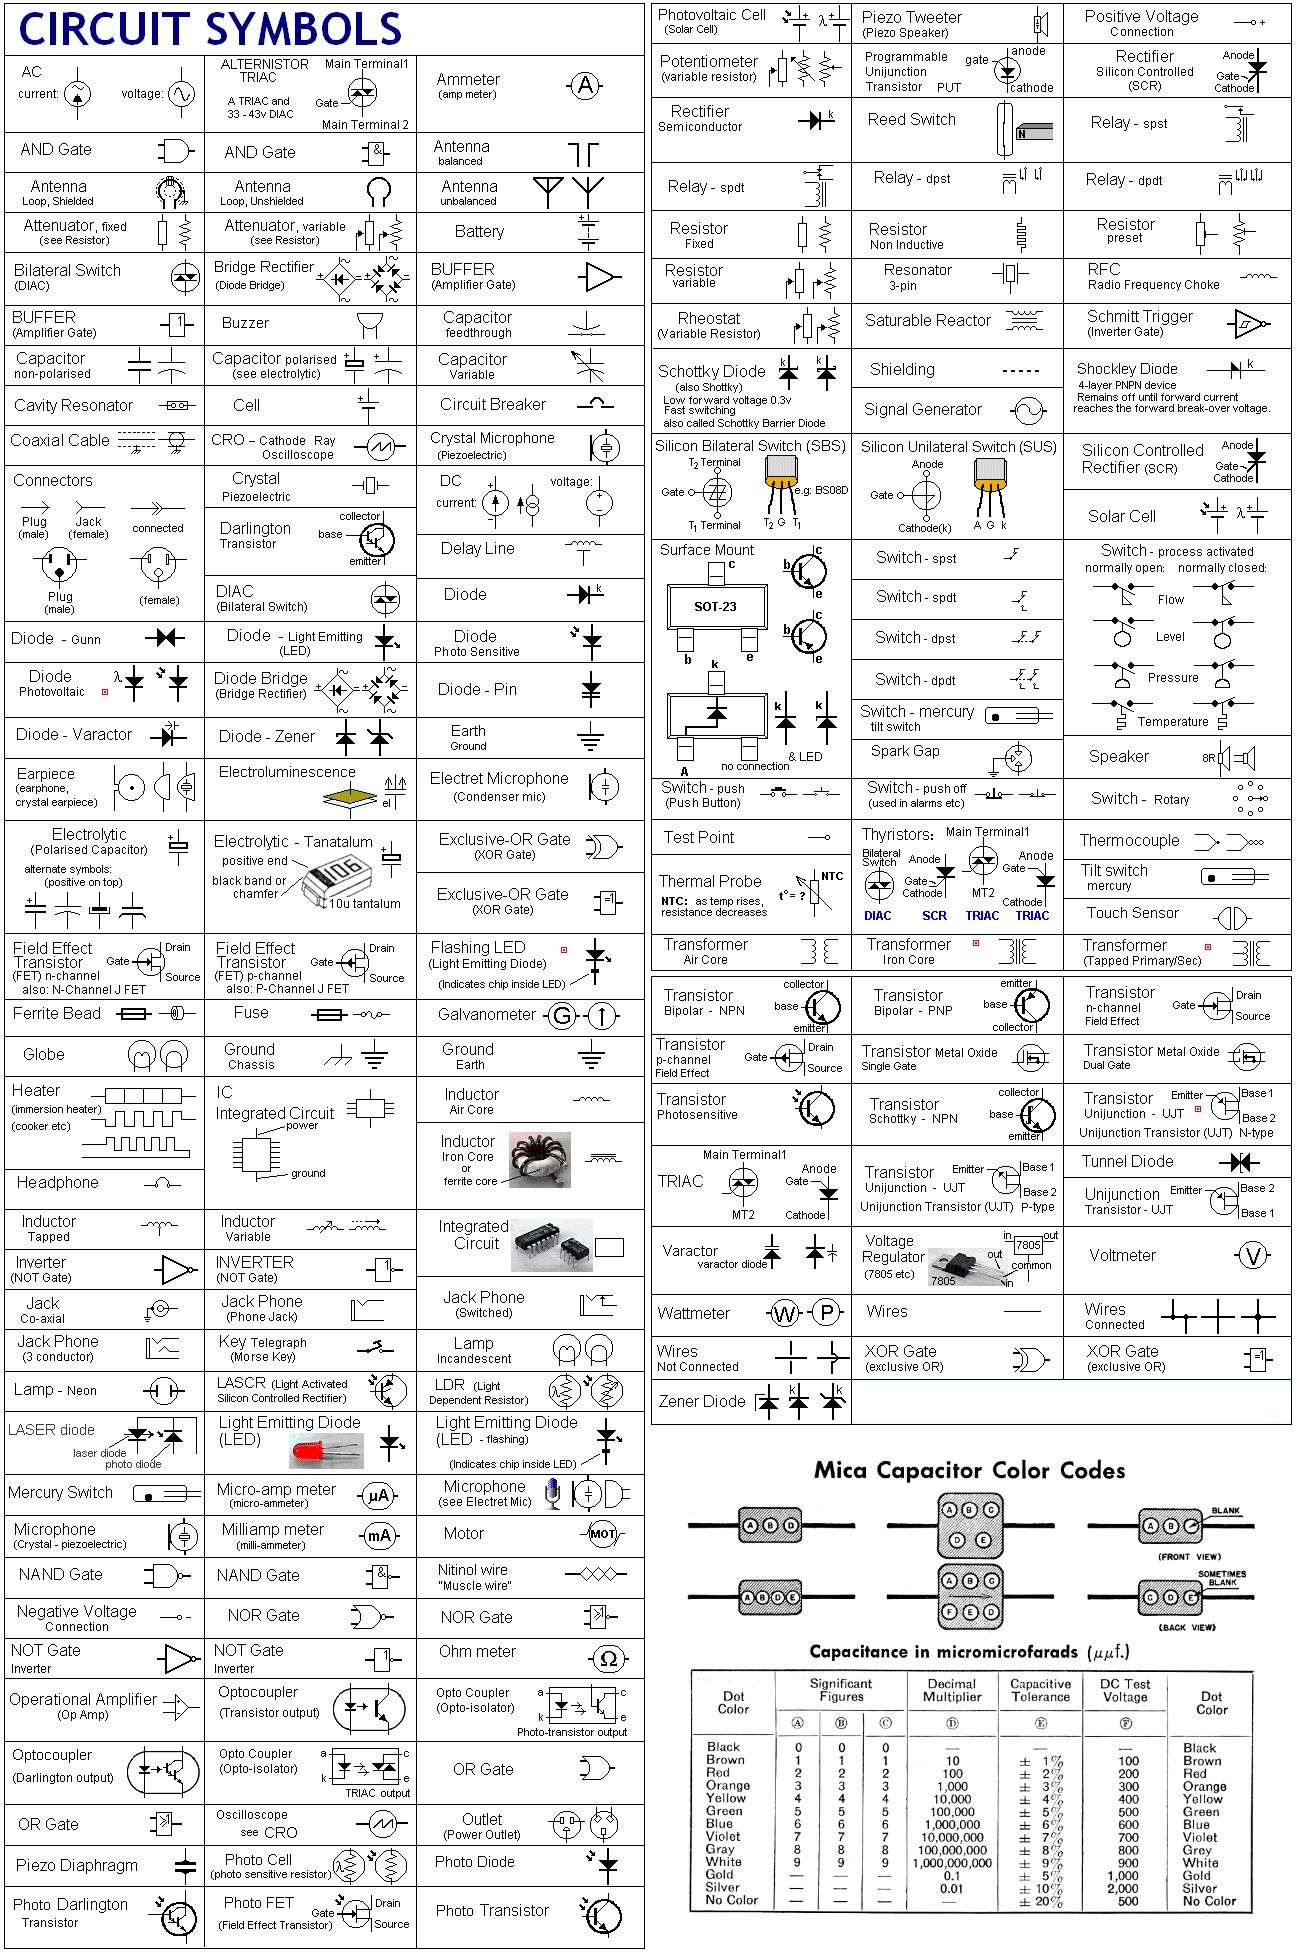 6c64fb84c8e162b28334051891c290f4 schematic symbols chart electric circuit symbols a considerably wiring diagram symbols at sewacar.co